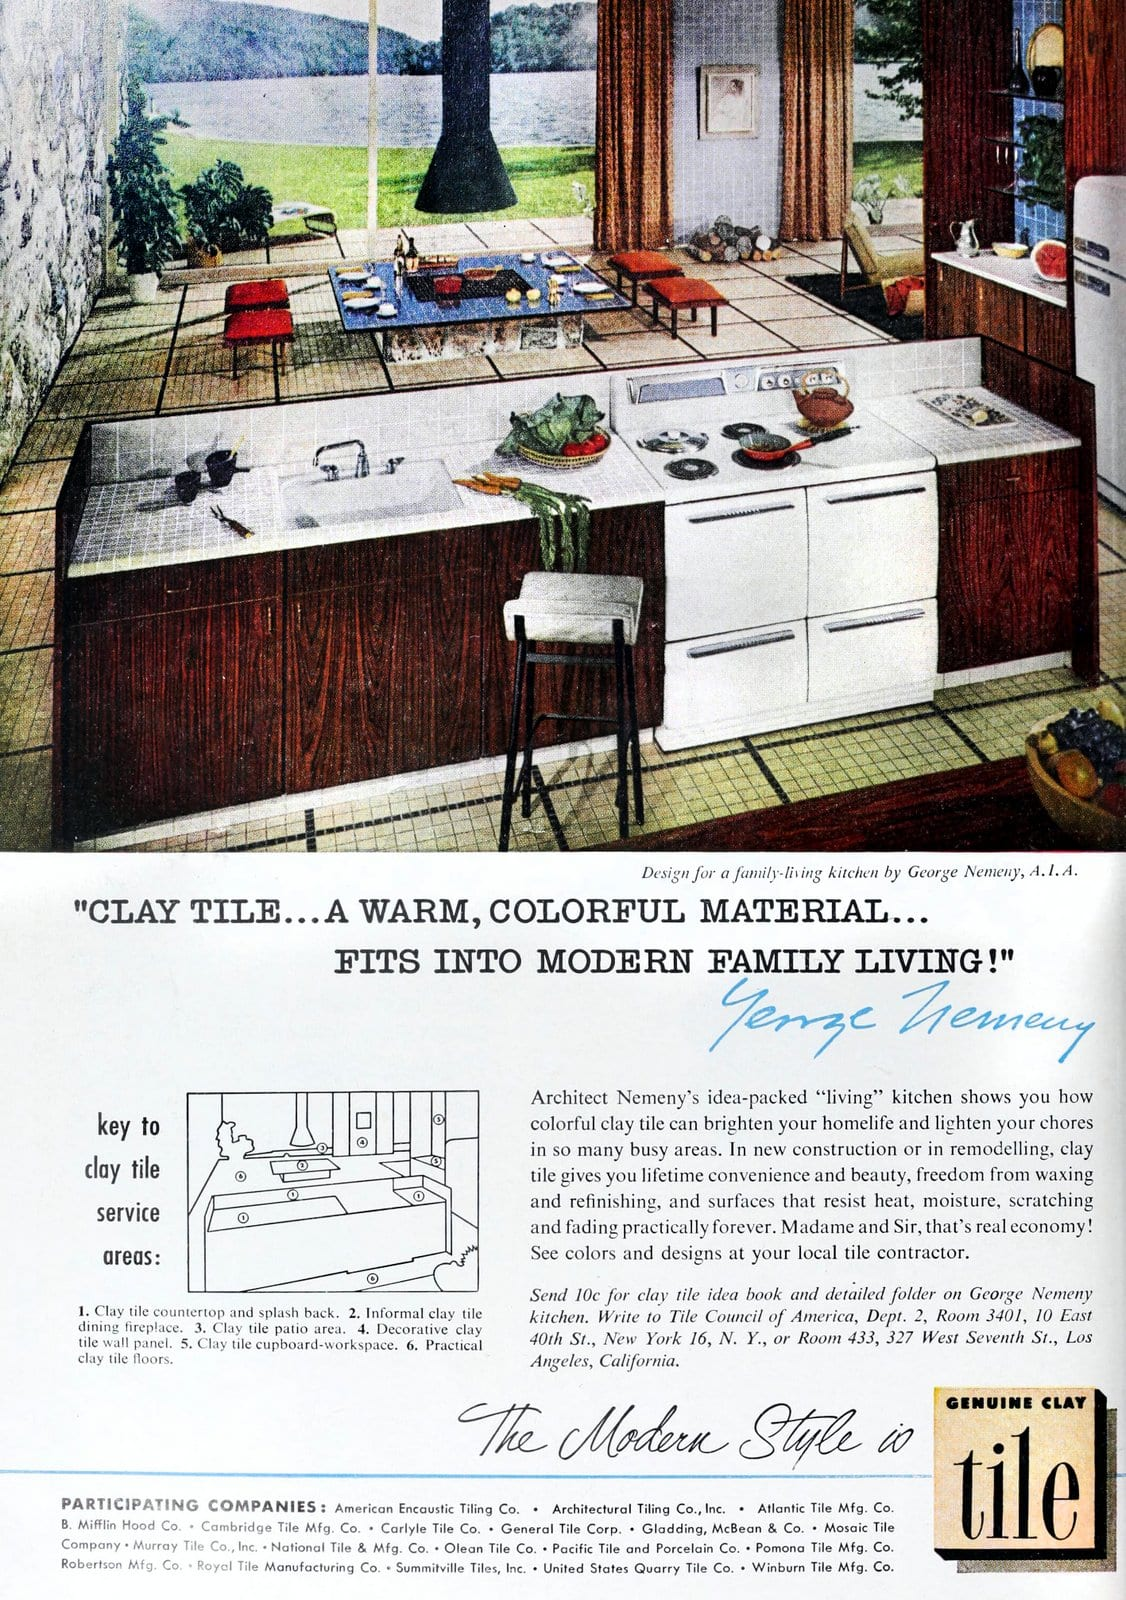 Design for a family-living kitchen by George Nemeny (1953)